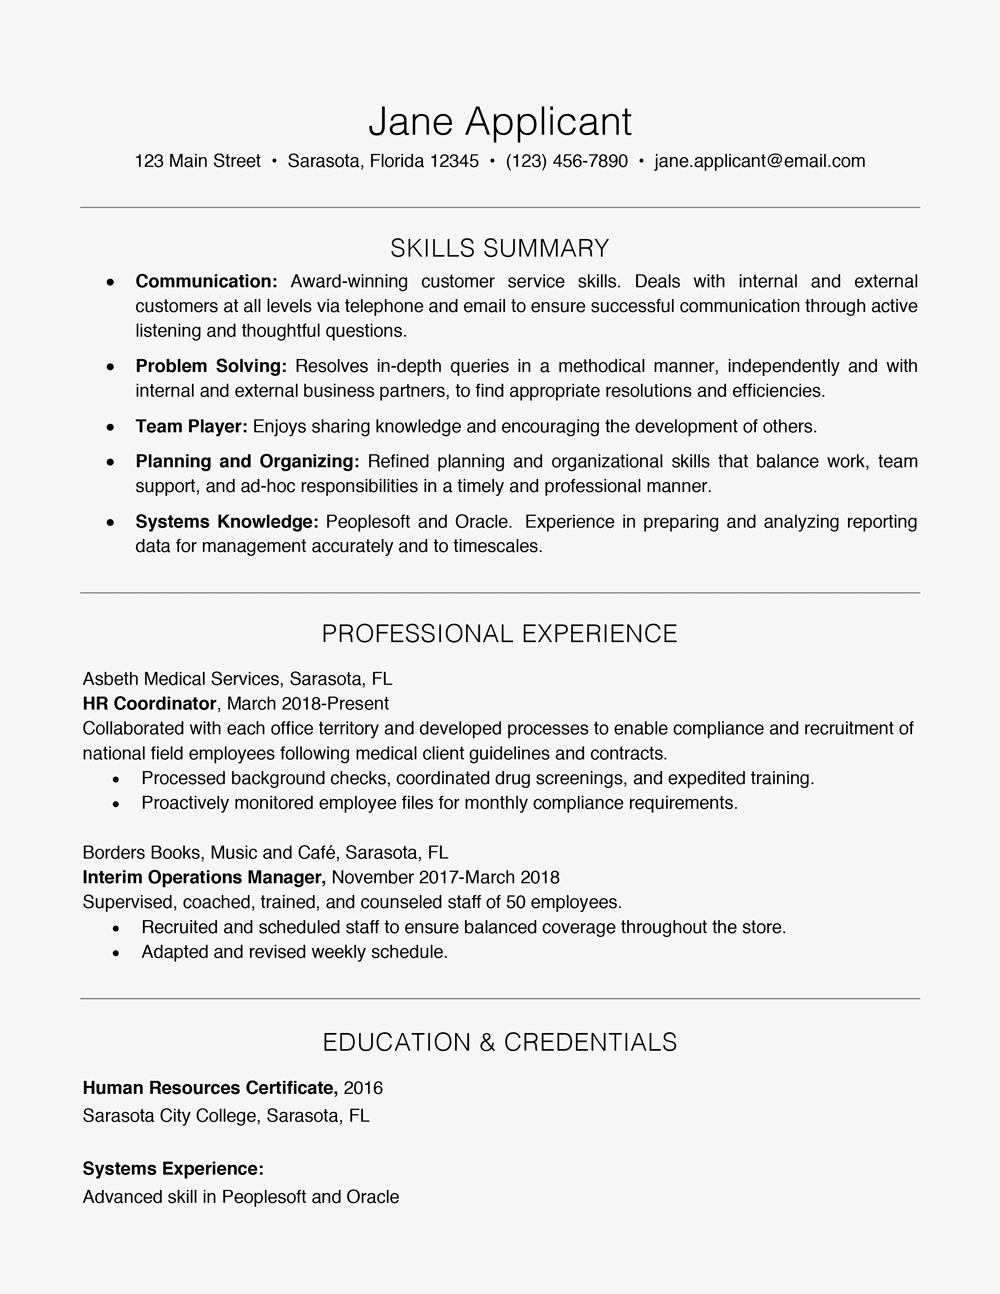 curriculum vitae meaning in hindi google translate